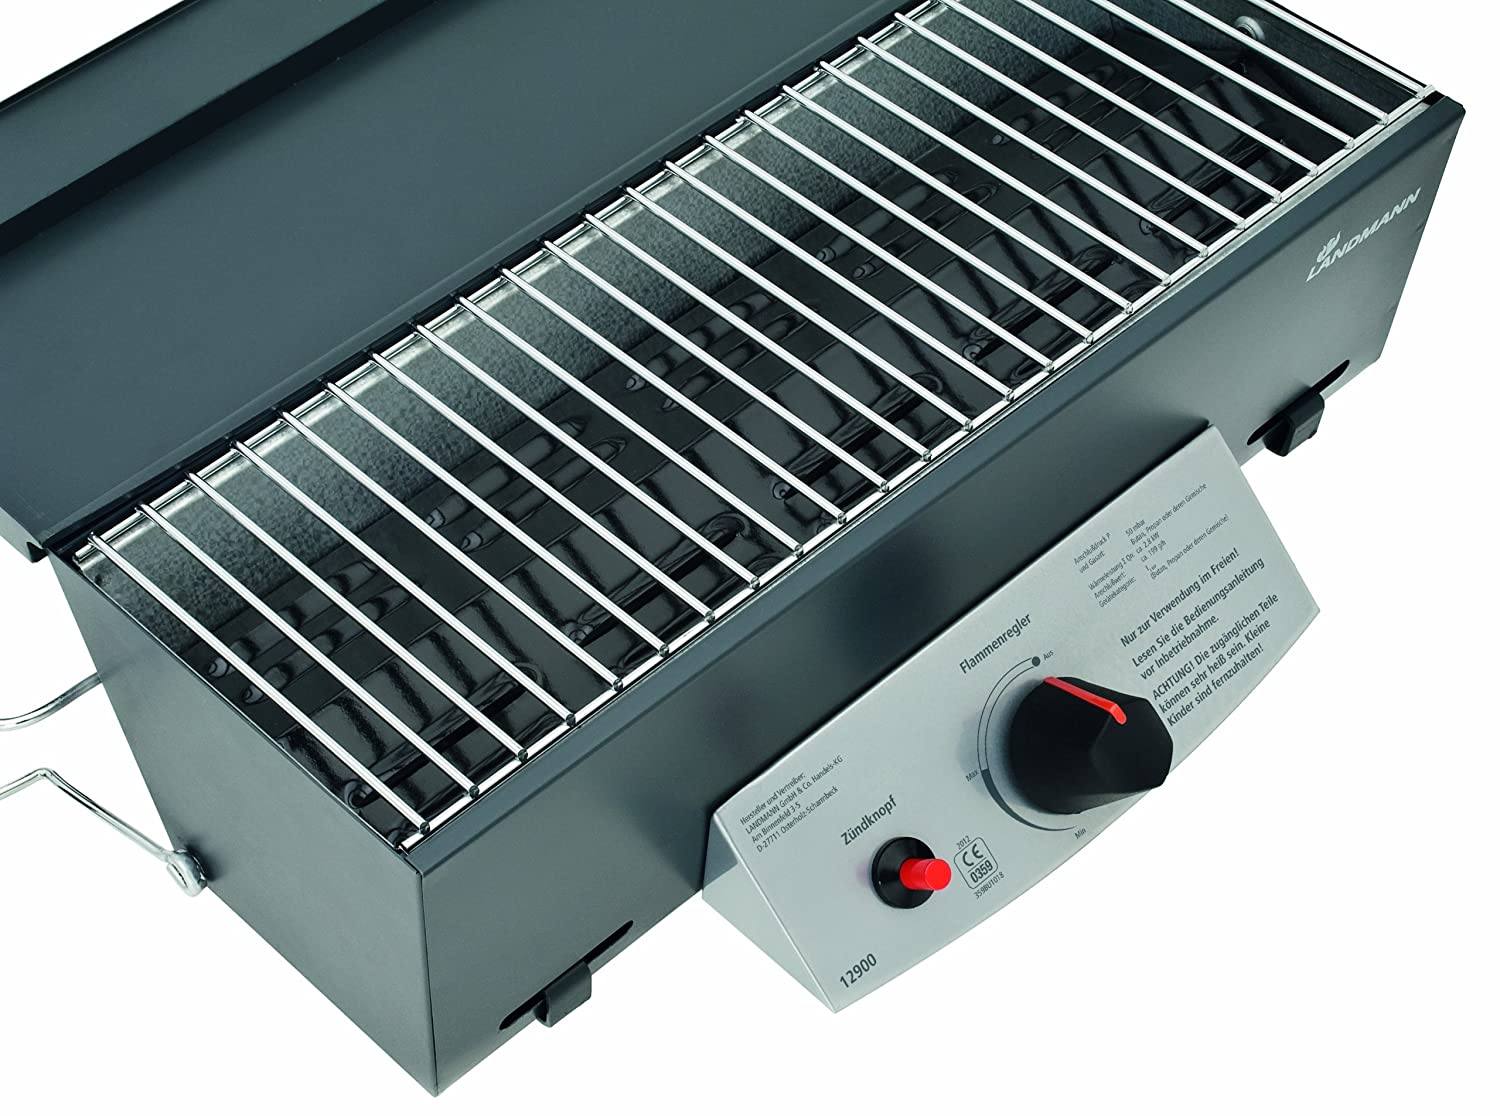 Landmann Gasgrill Mini : Landmann gas balkongrill silber  cm amazon